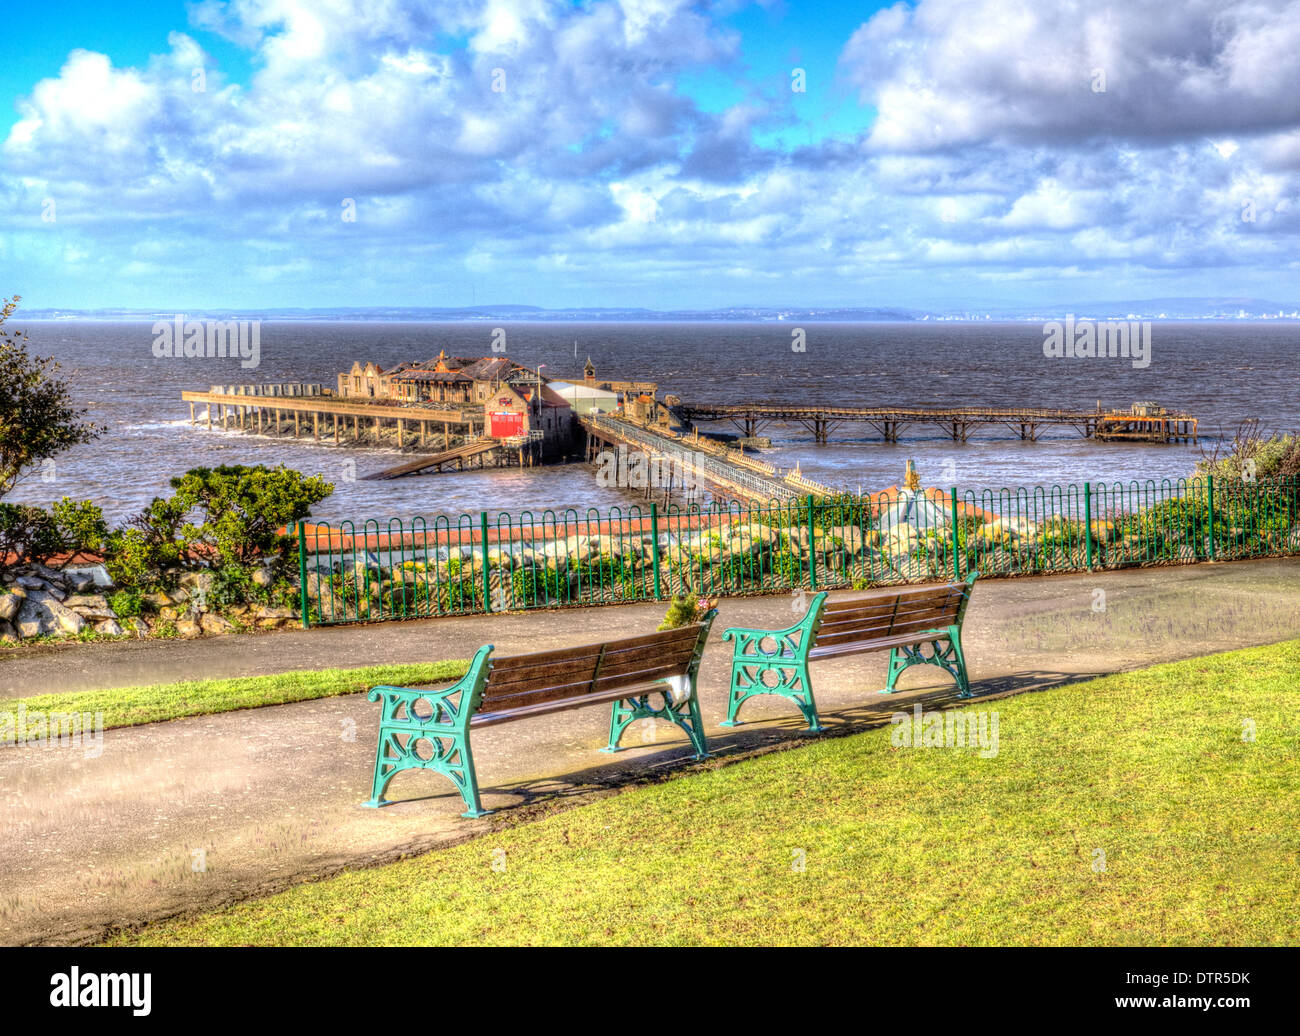 Birnbeck Pier Weston-super-Mare Somerset England historic English structure from Prince Consort Gardens - Stock Image